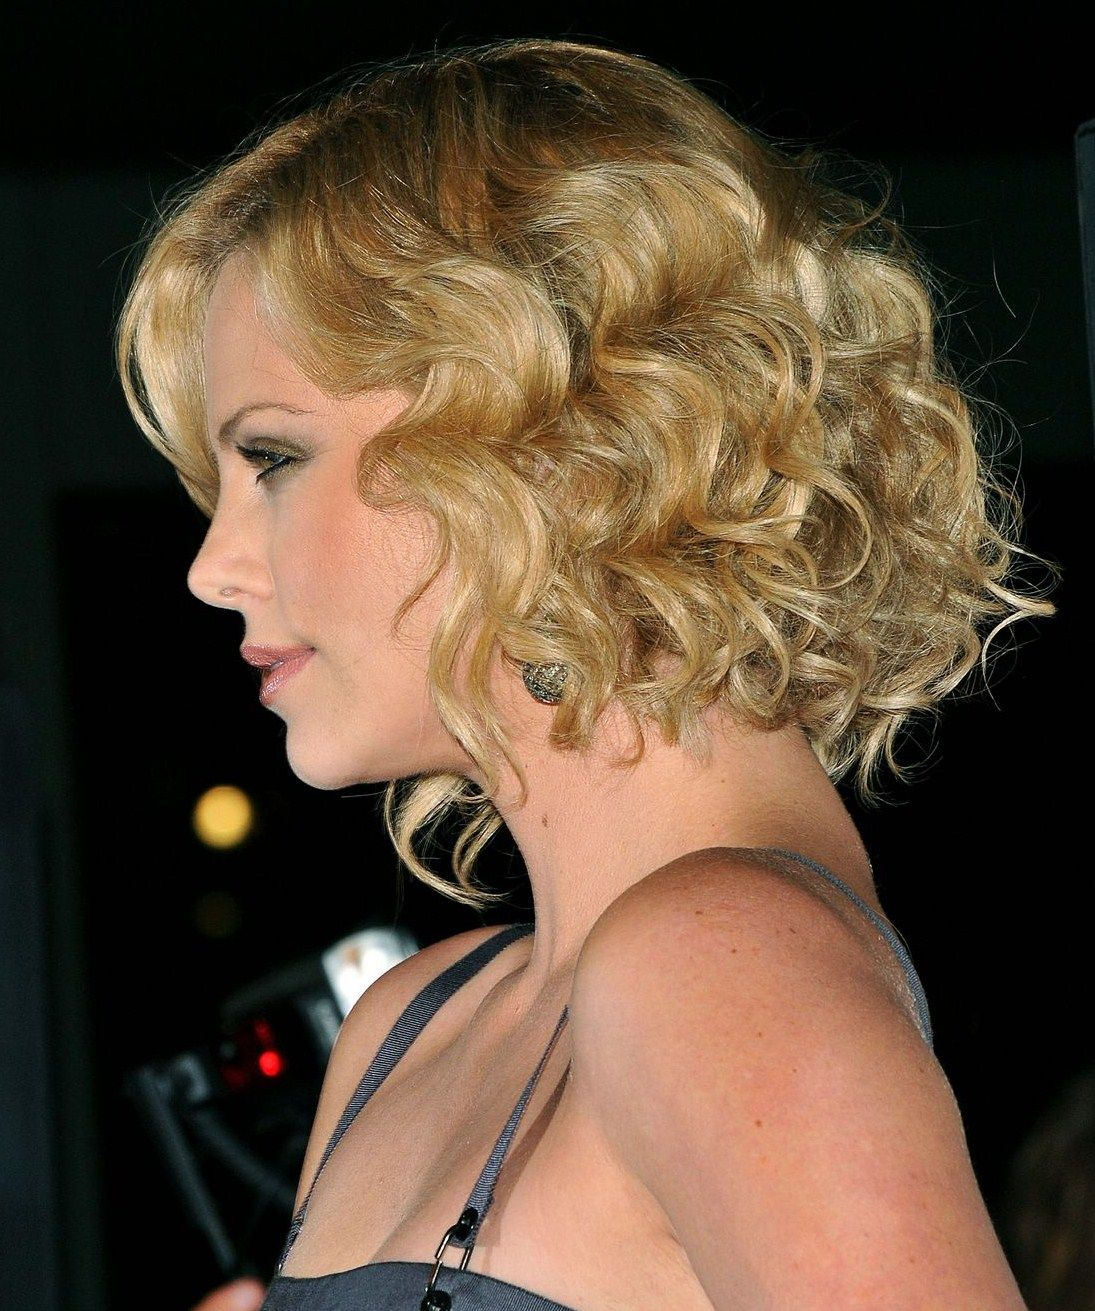 Charlize Theron-left side | SHORT Hair